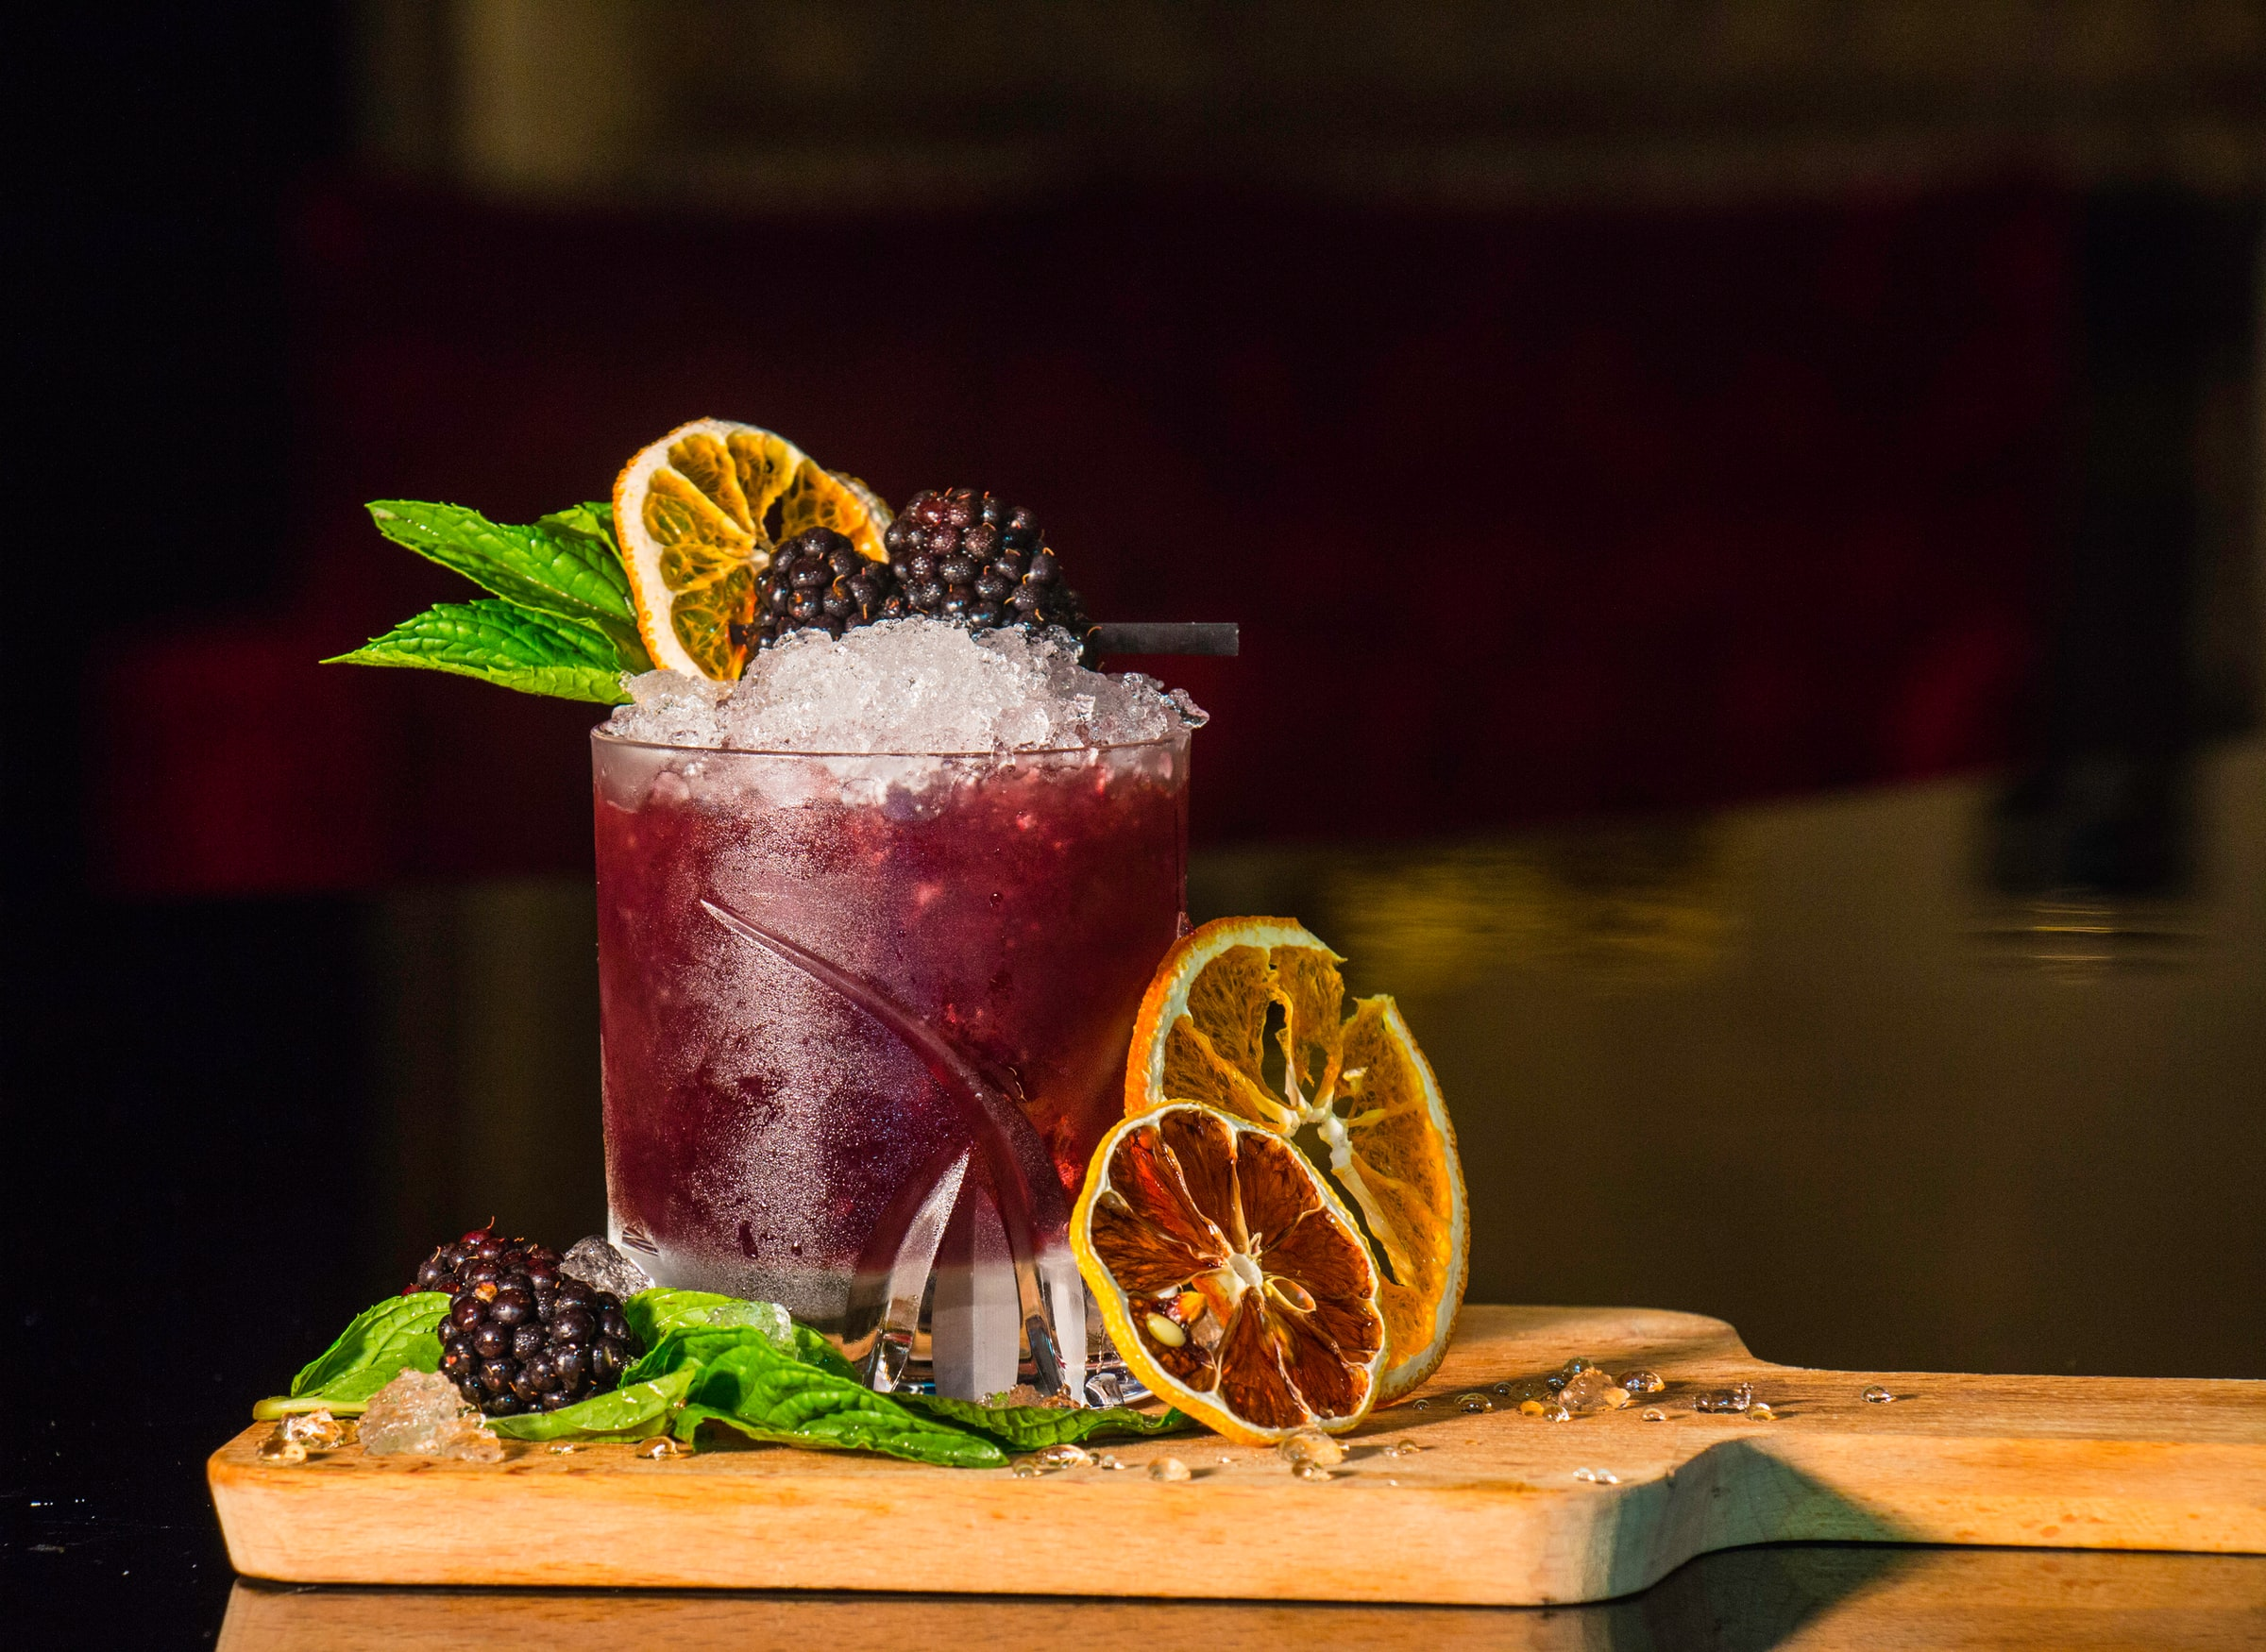 A bramble cocktail sits on a wooden board with blackberries, basil leaves and dehydrated orange slices as decoration and garnish - Photo by Proriat Hospitality on Unsplash